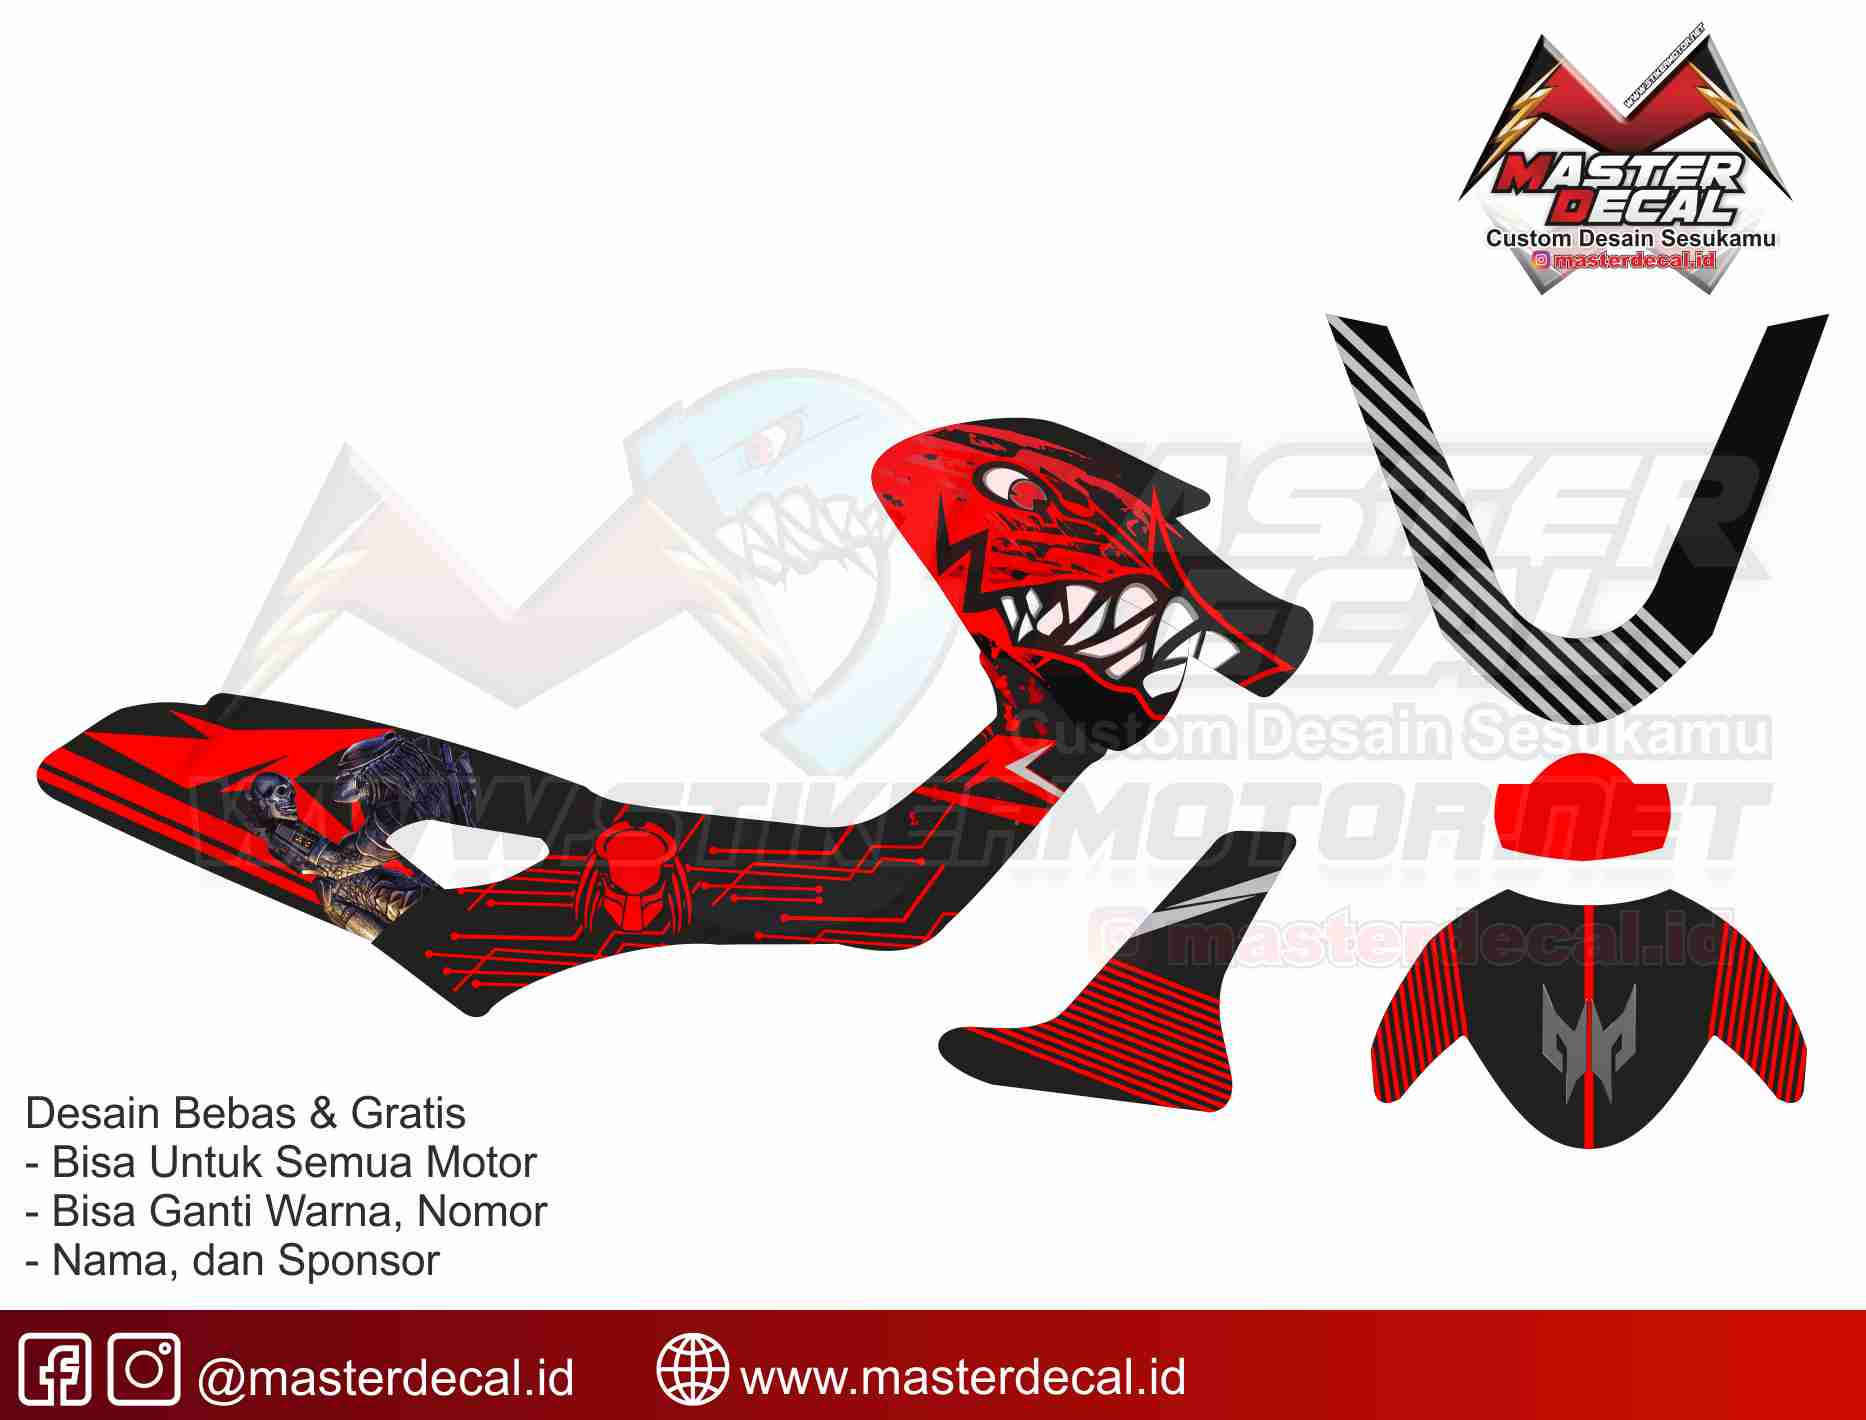 All new beat esp archives stikermotor net customize without limit